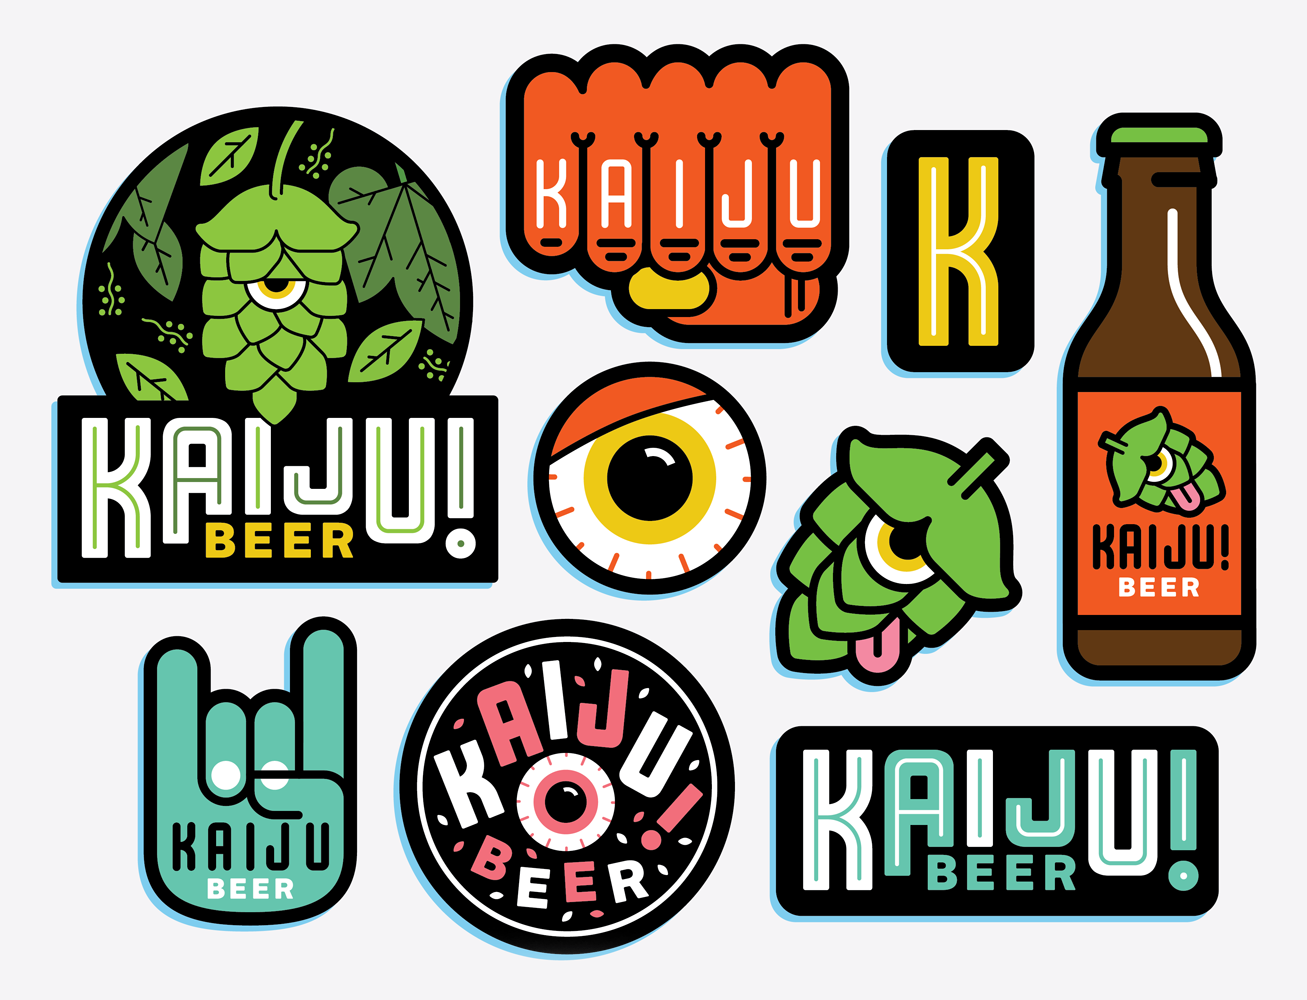 Kaiju! Beer | Oh Beautiful Beer